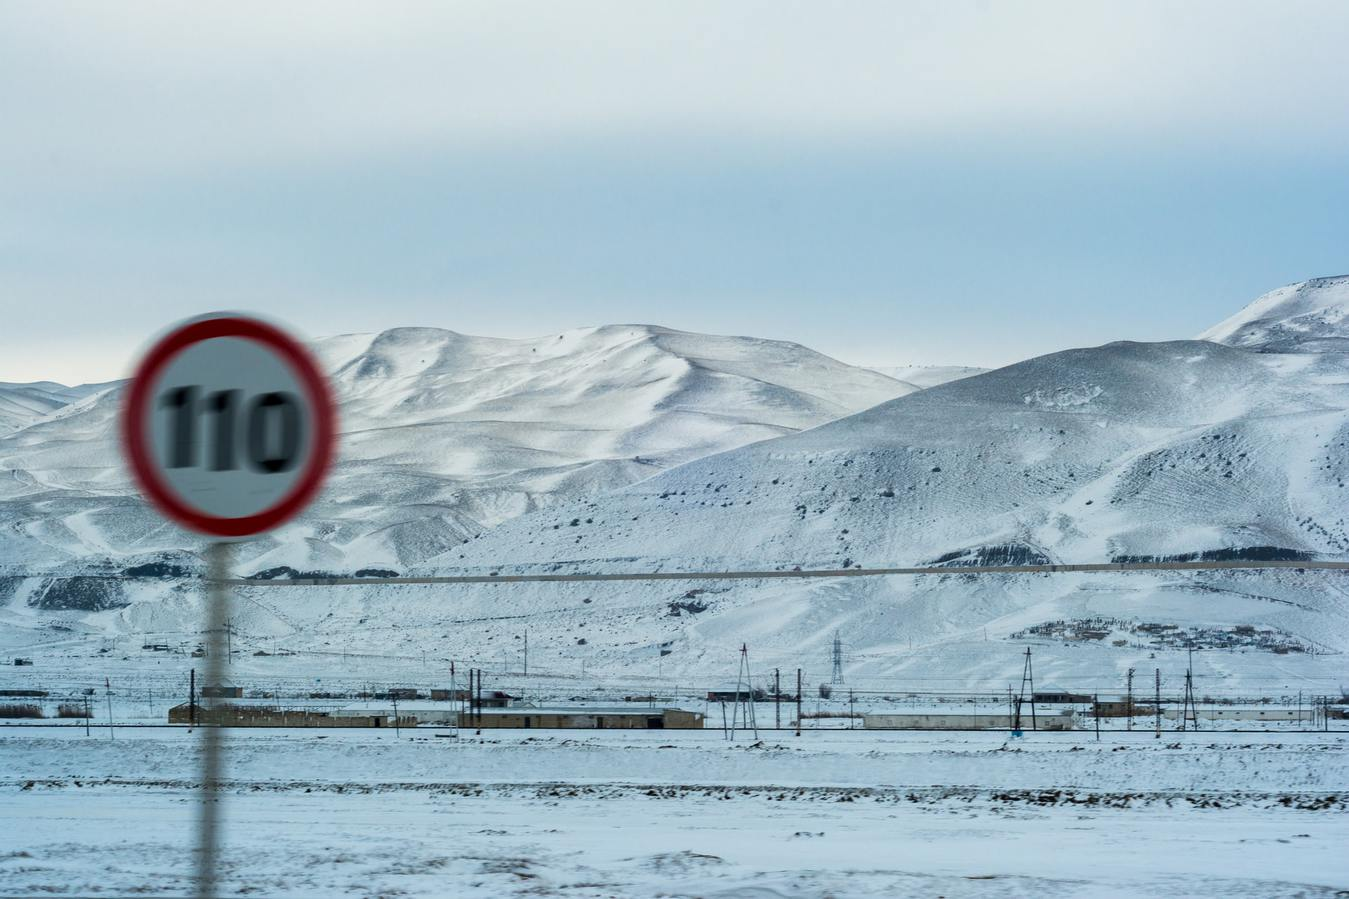 Snowy landscape with Speed Limit sign that's blurry